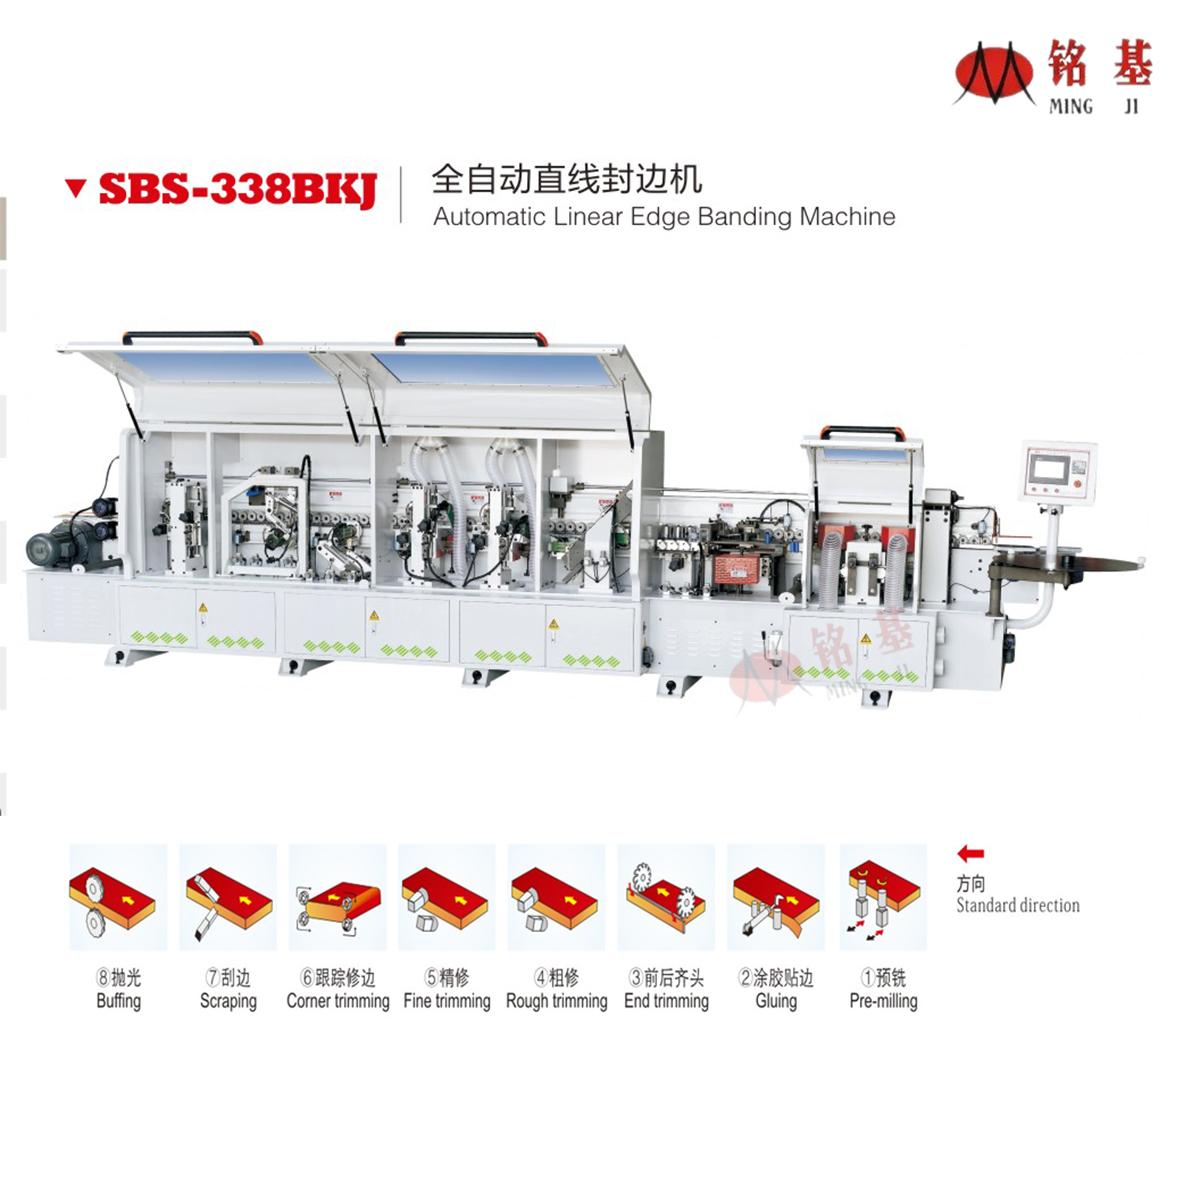 Foshan Mingji SBS-338BKJ Automatic egde banding machine with premilling